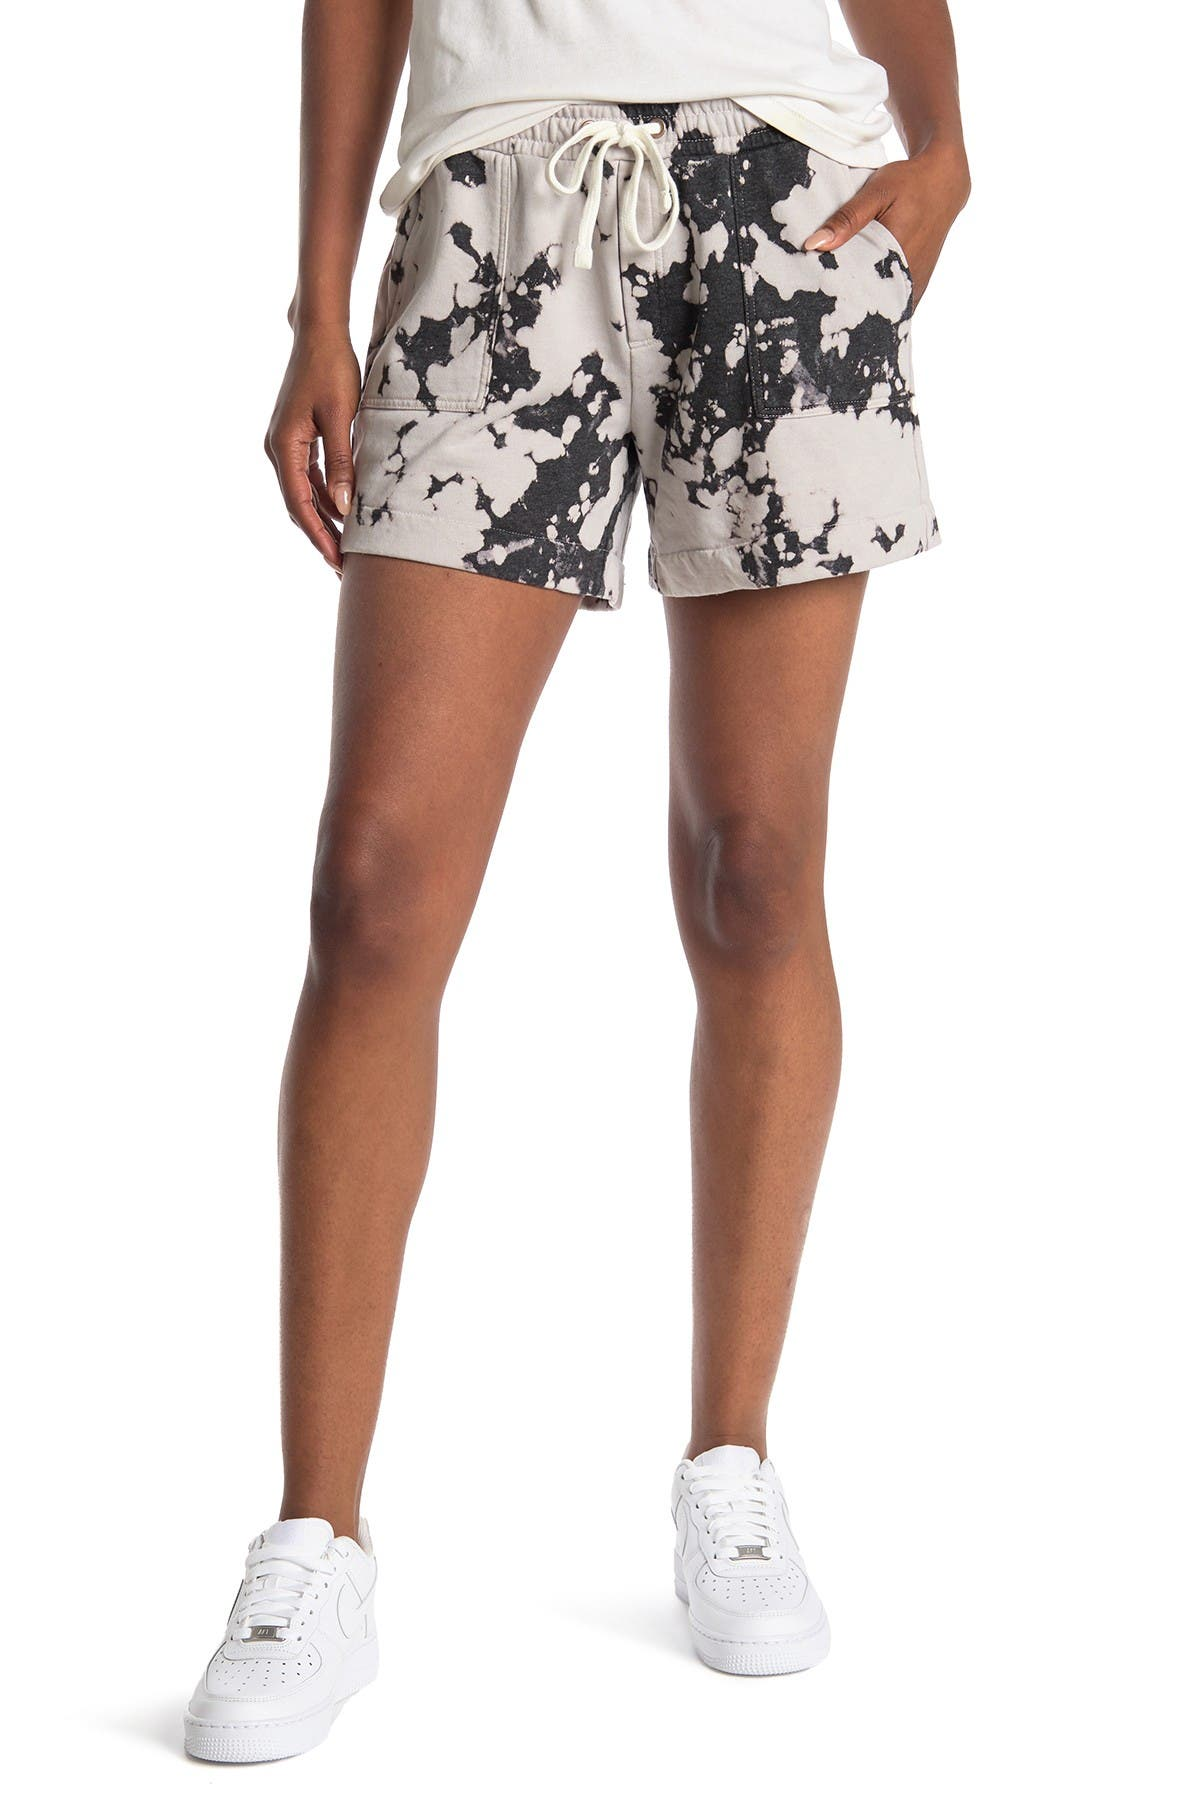 Image of MAUBY French Terry Pull-On Shorts